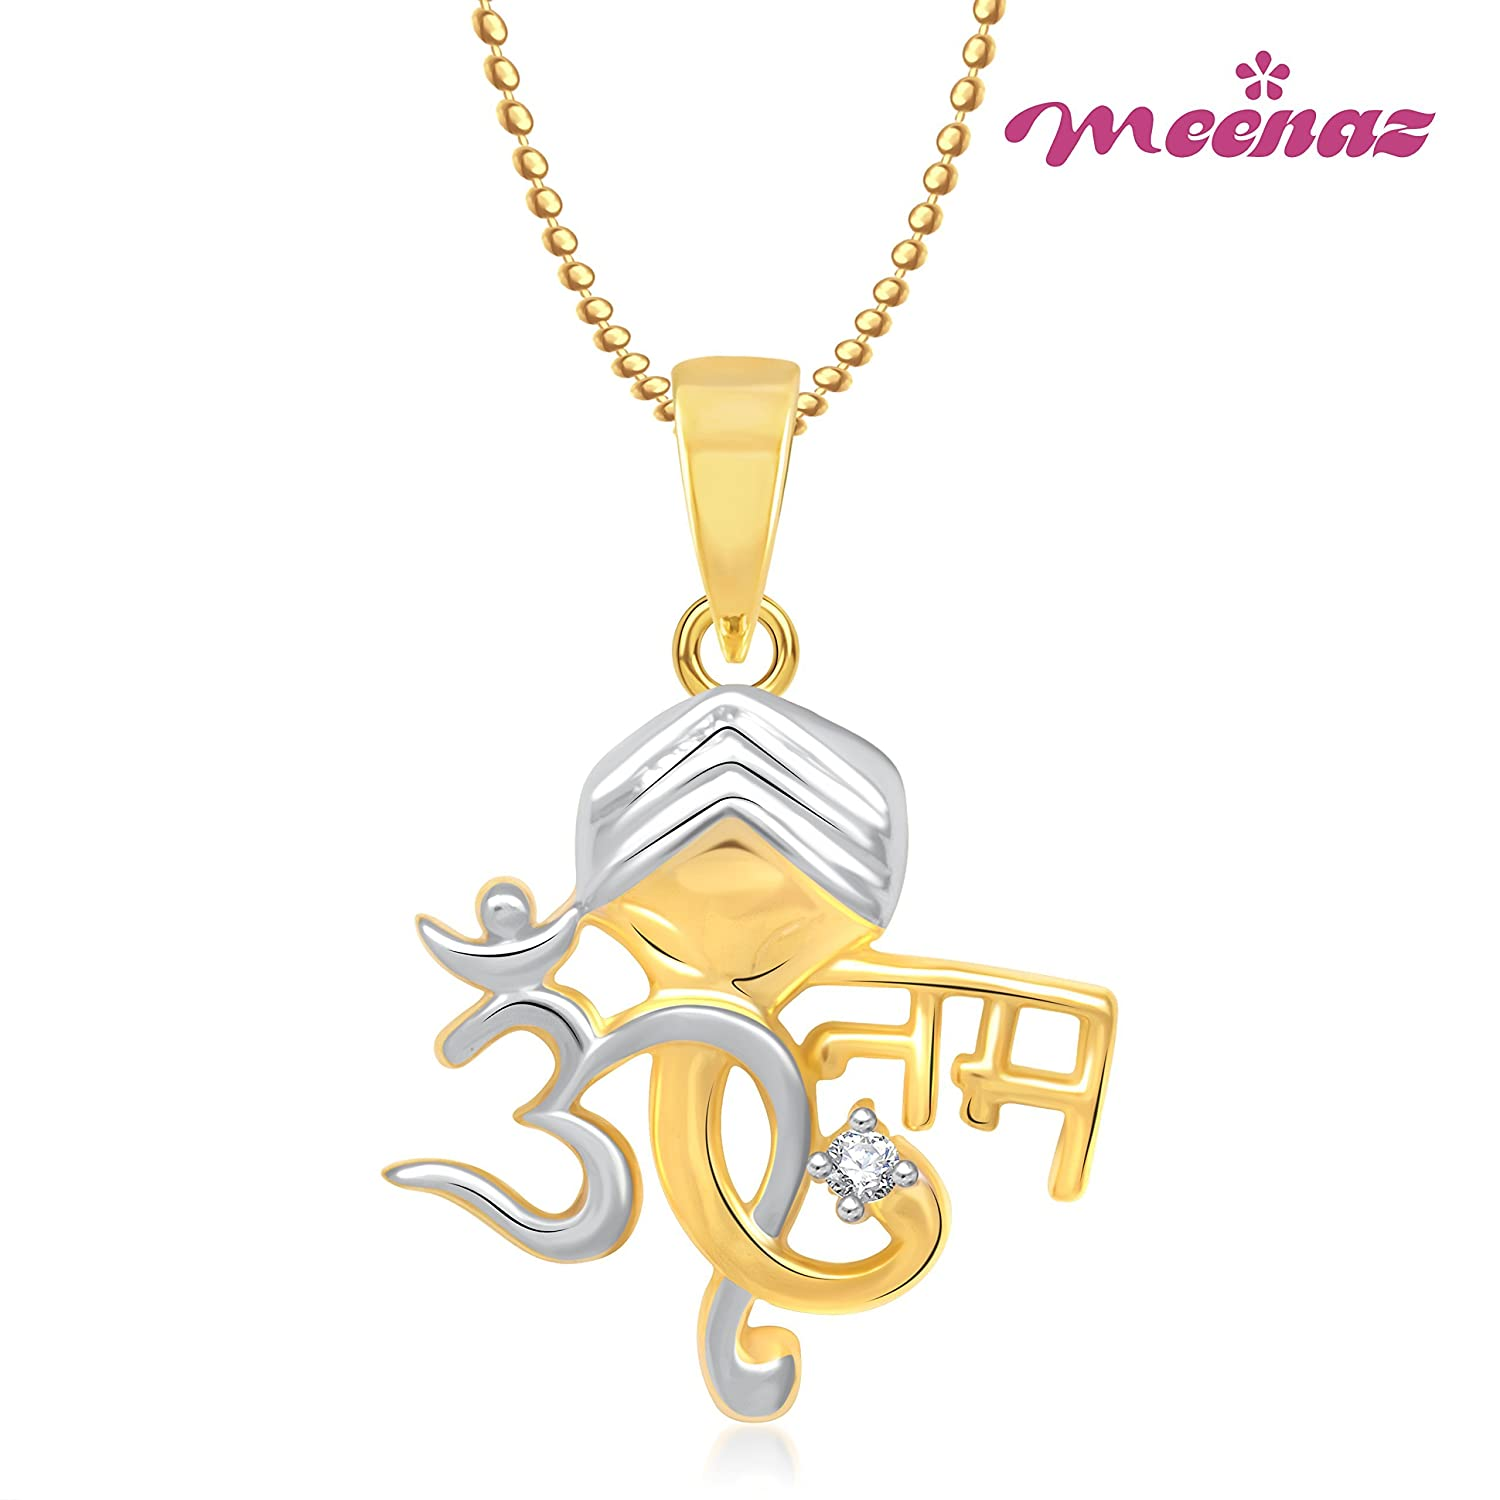 caymancode lockets and gold ganpati in meenfeaa men with god for women diamond cz pendant american gp jewganpati chain plated